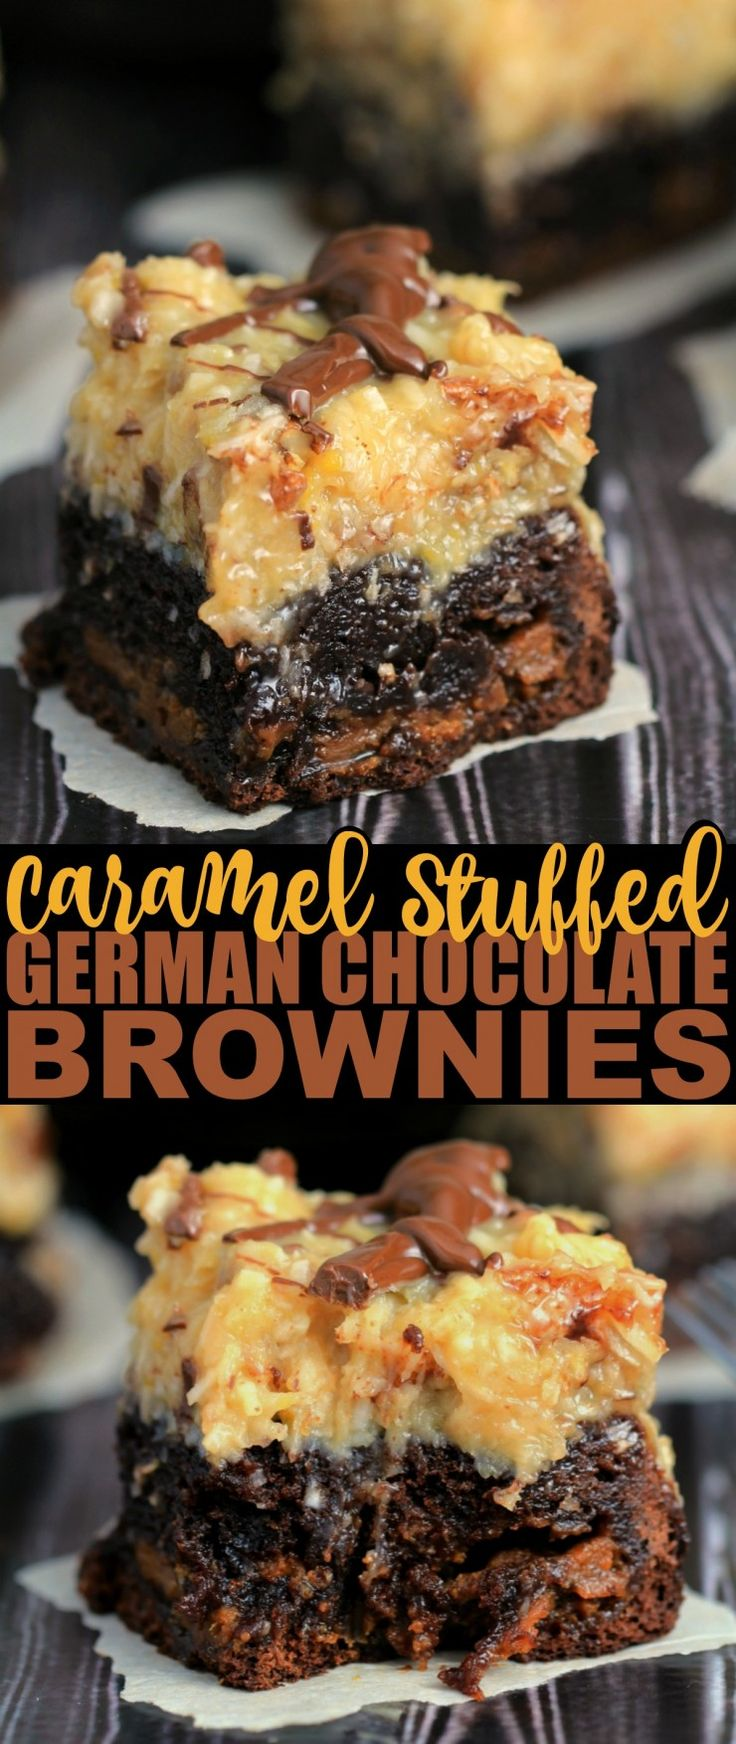 Caramel Stuffed German Chocolate Brownies